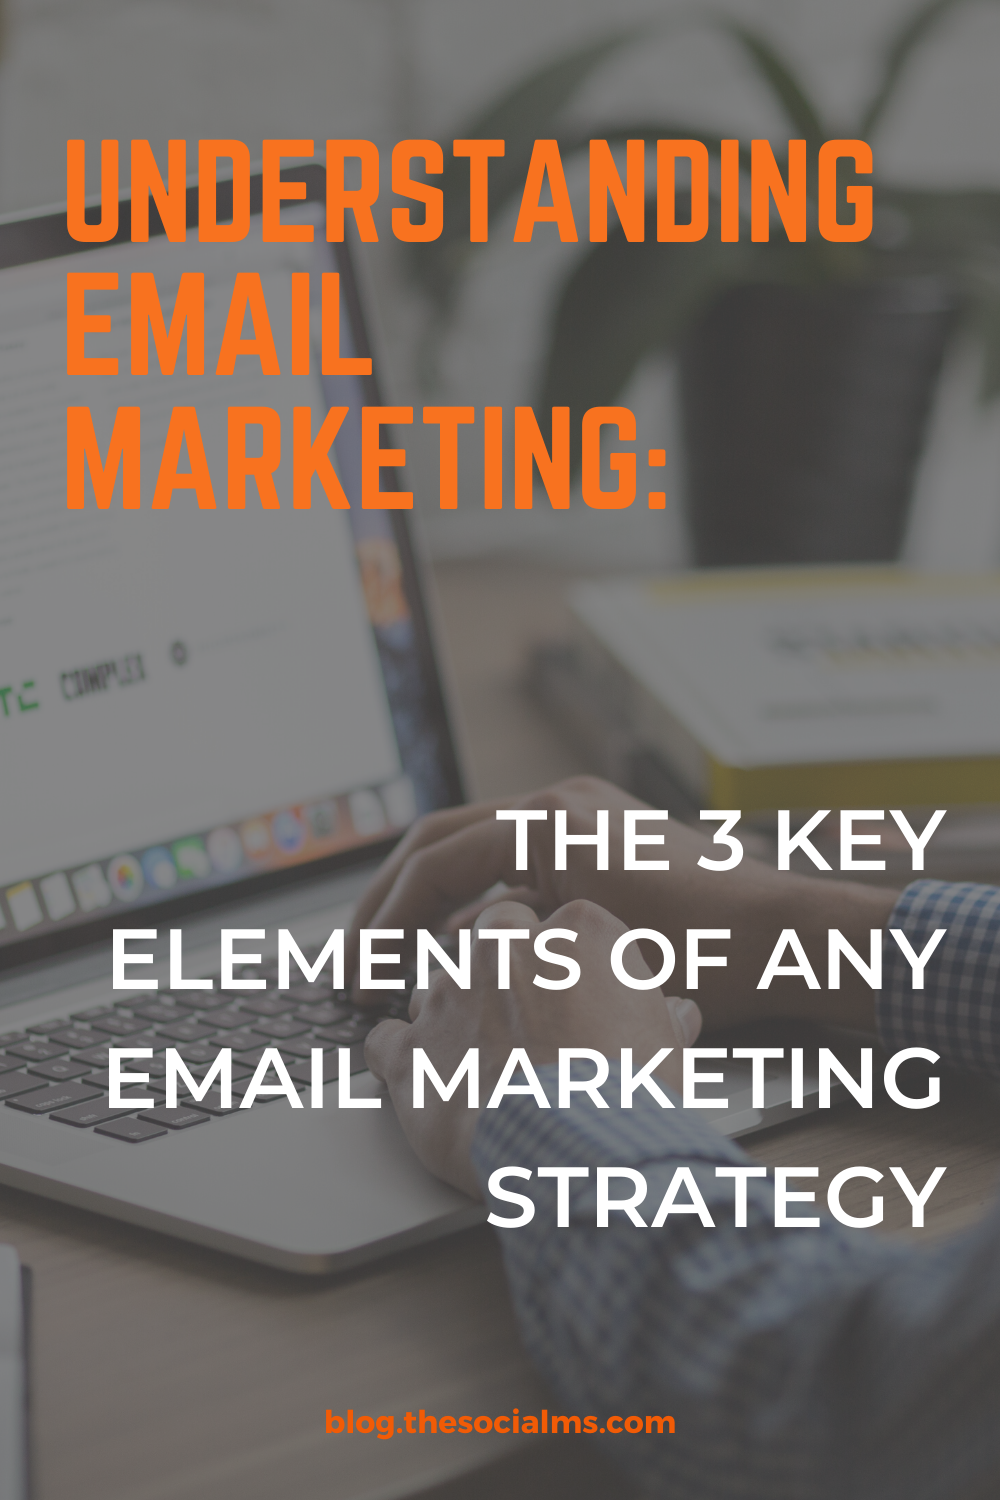 We give you an overview of how good email marketing works and how you can start doing great email marketing yourself. We will explain the key elements of email marketing. #emailmarketing #emailsubscriber #newslettermarketing #listbuilding #emaillist #bloggingtips #bloggingtools #smallbusinessmarketing #onlinebusiness